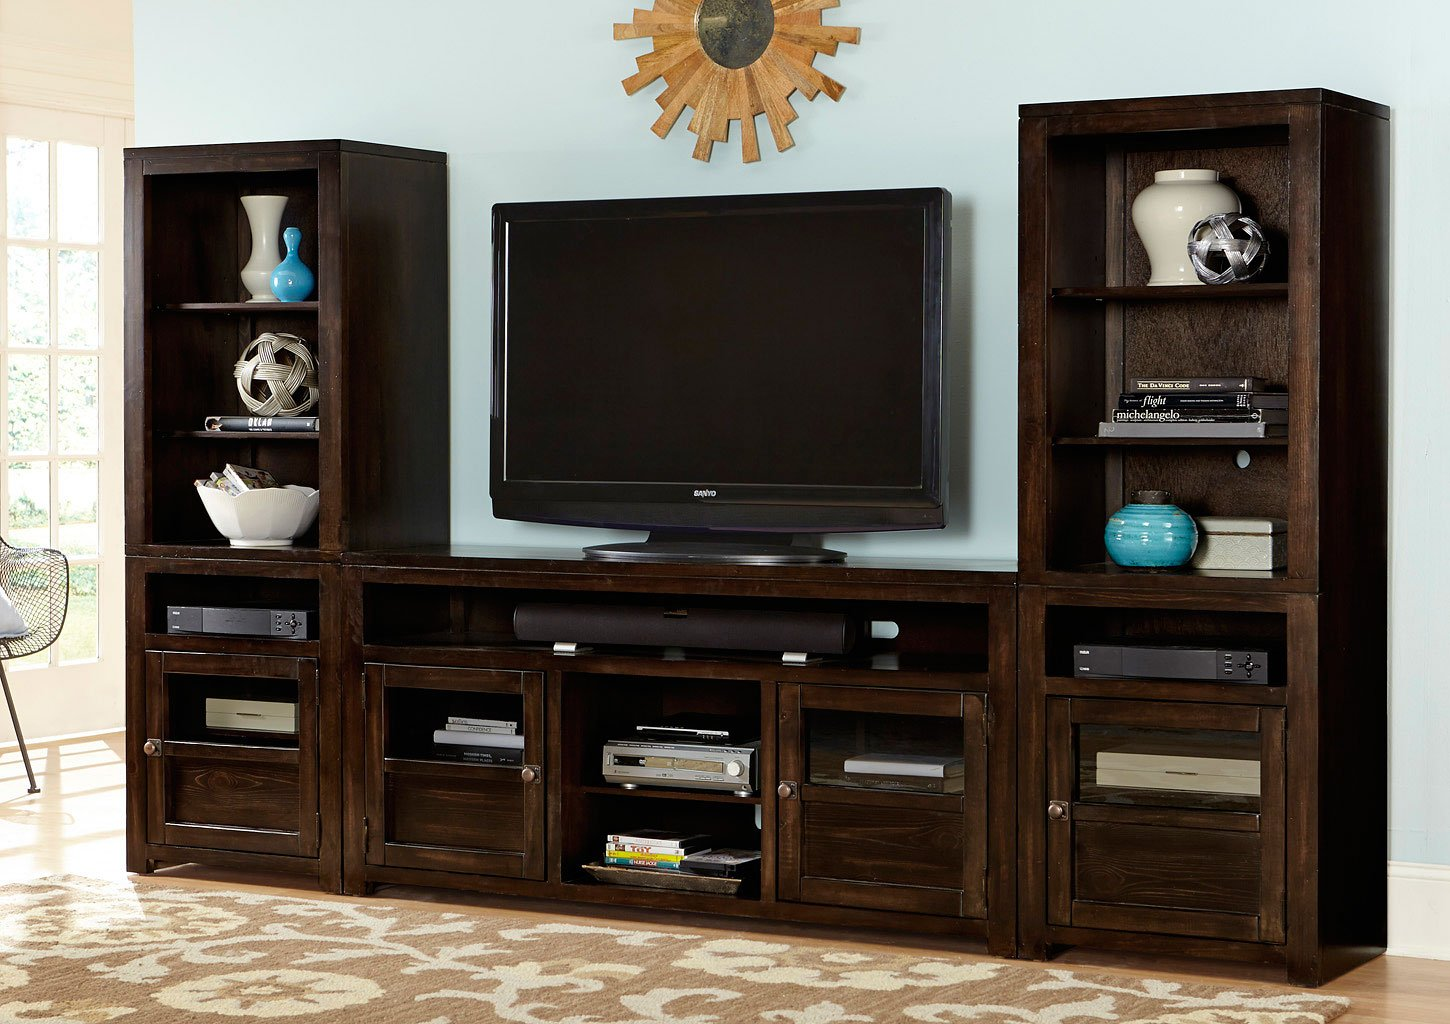 Triumph entertainment wall entertainment centers and Entertainment living room furniture